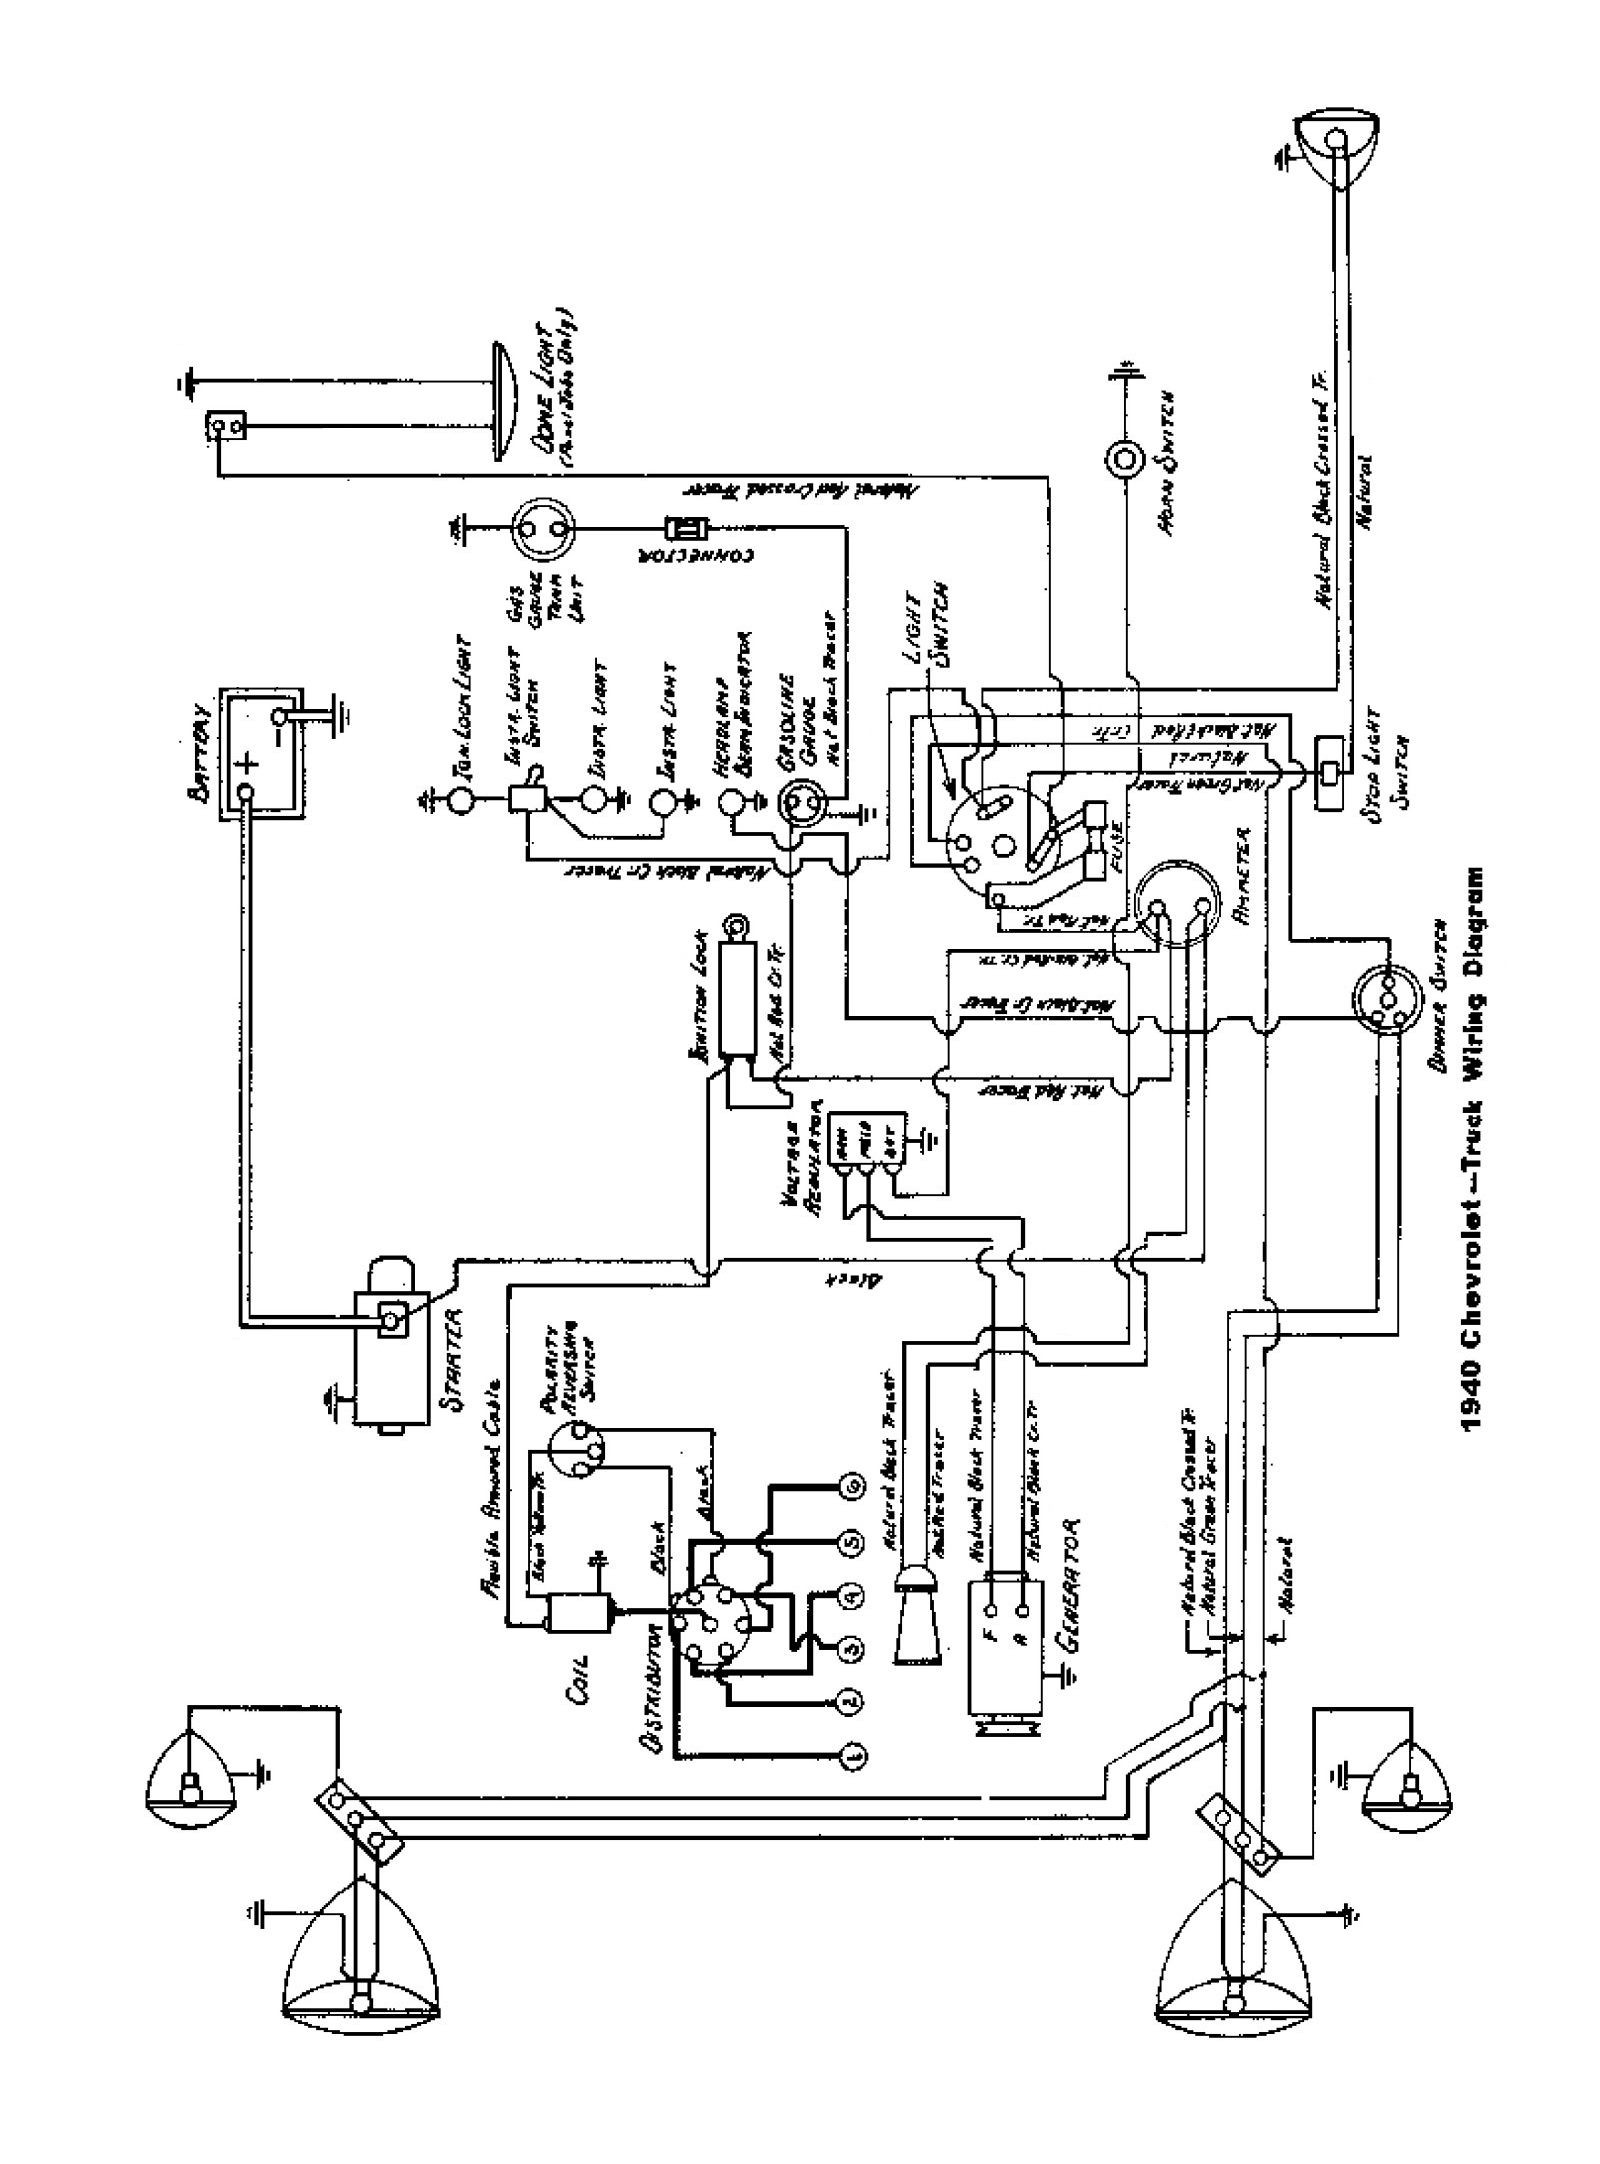 Wiring Diagrams for Chevy Trucks Chevy Wiring Diagrams